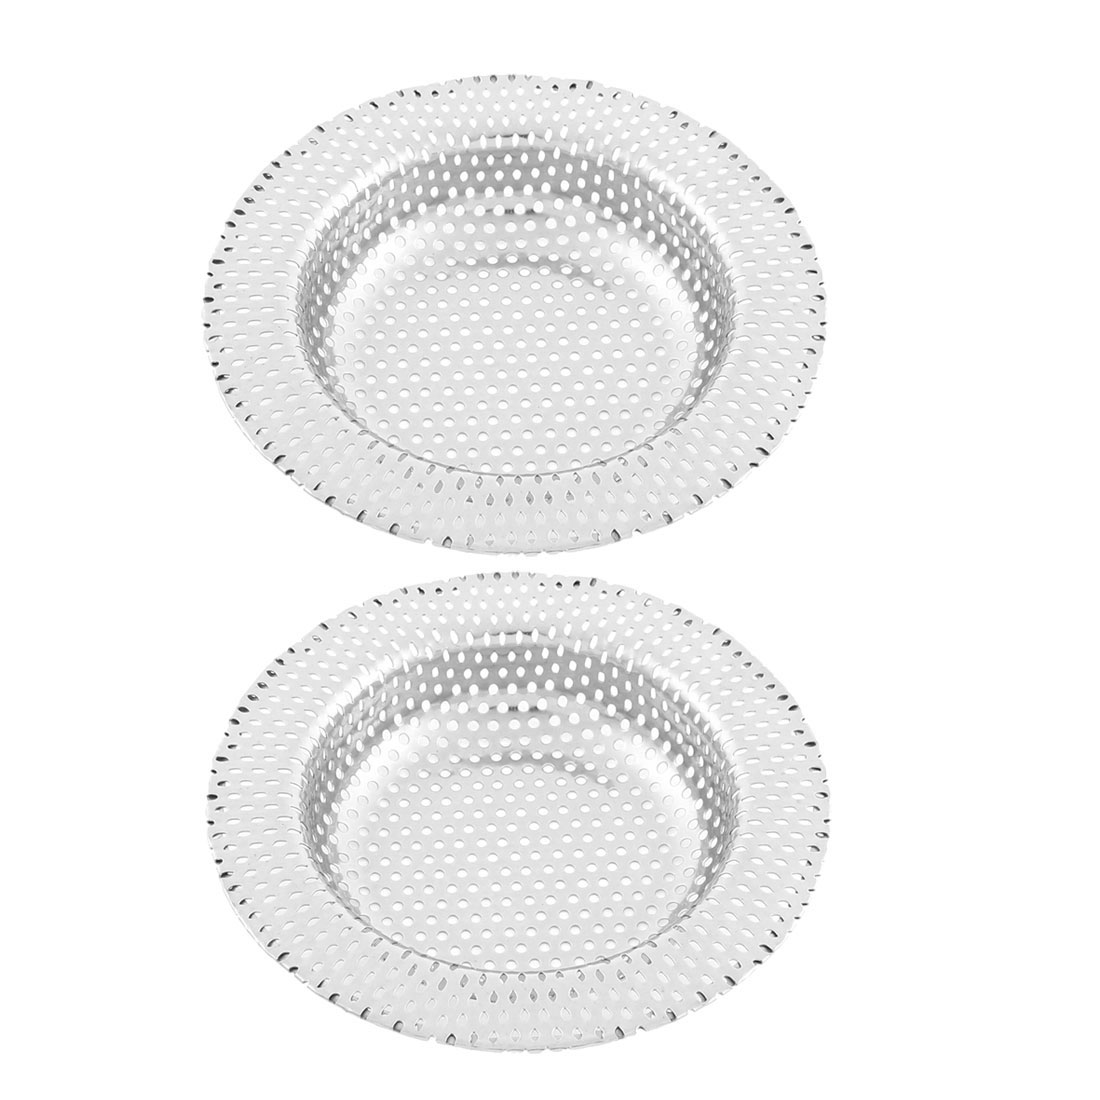 Kitchen Bathroom Basin Sink Floor Waste Strainer Filter Stopper 11cm Dia 2pcs